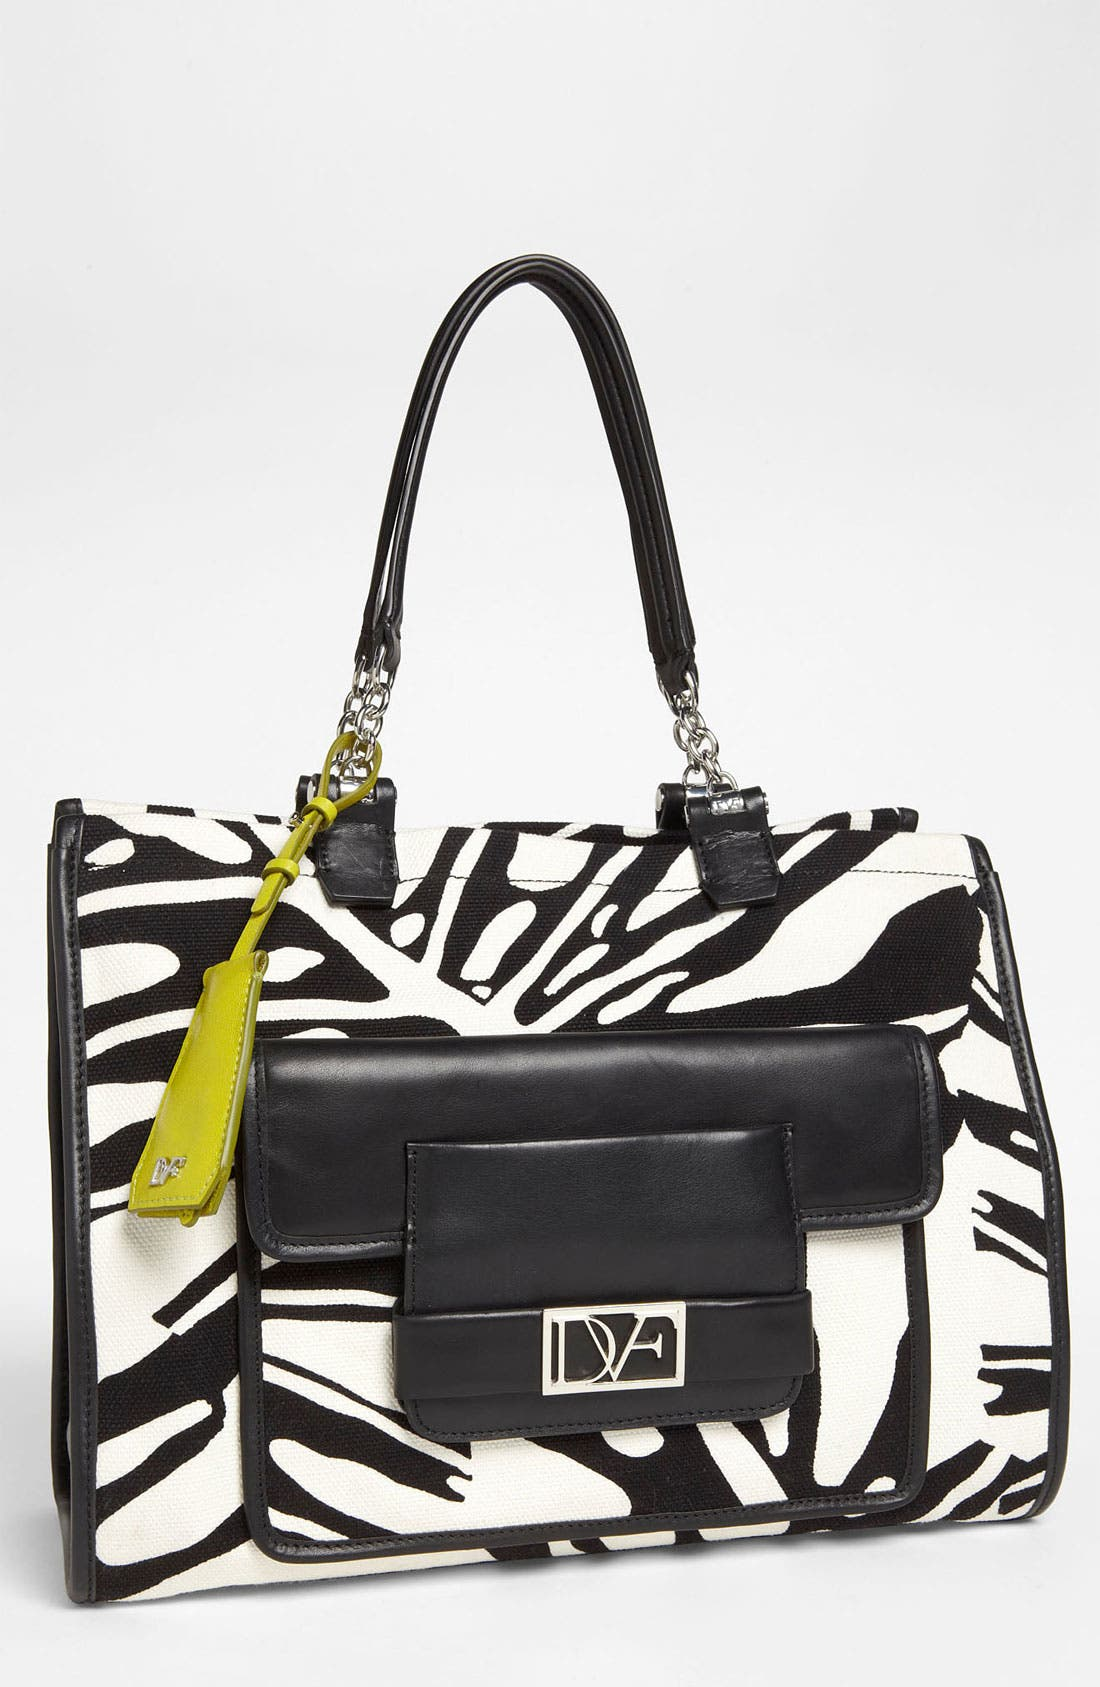 Alternate Image 1 Selected - Diane von Furstenberg 'Lola' Print Tote